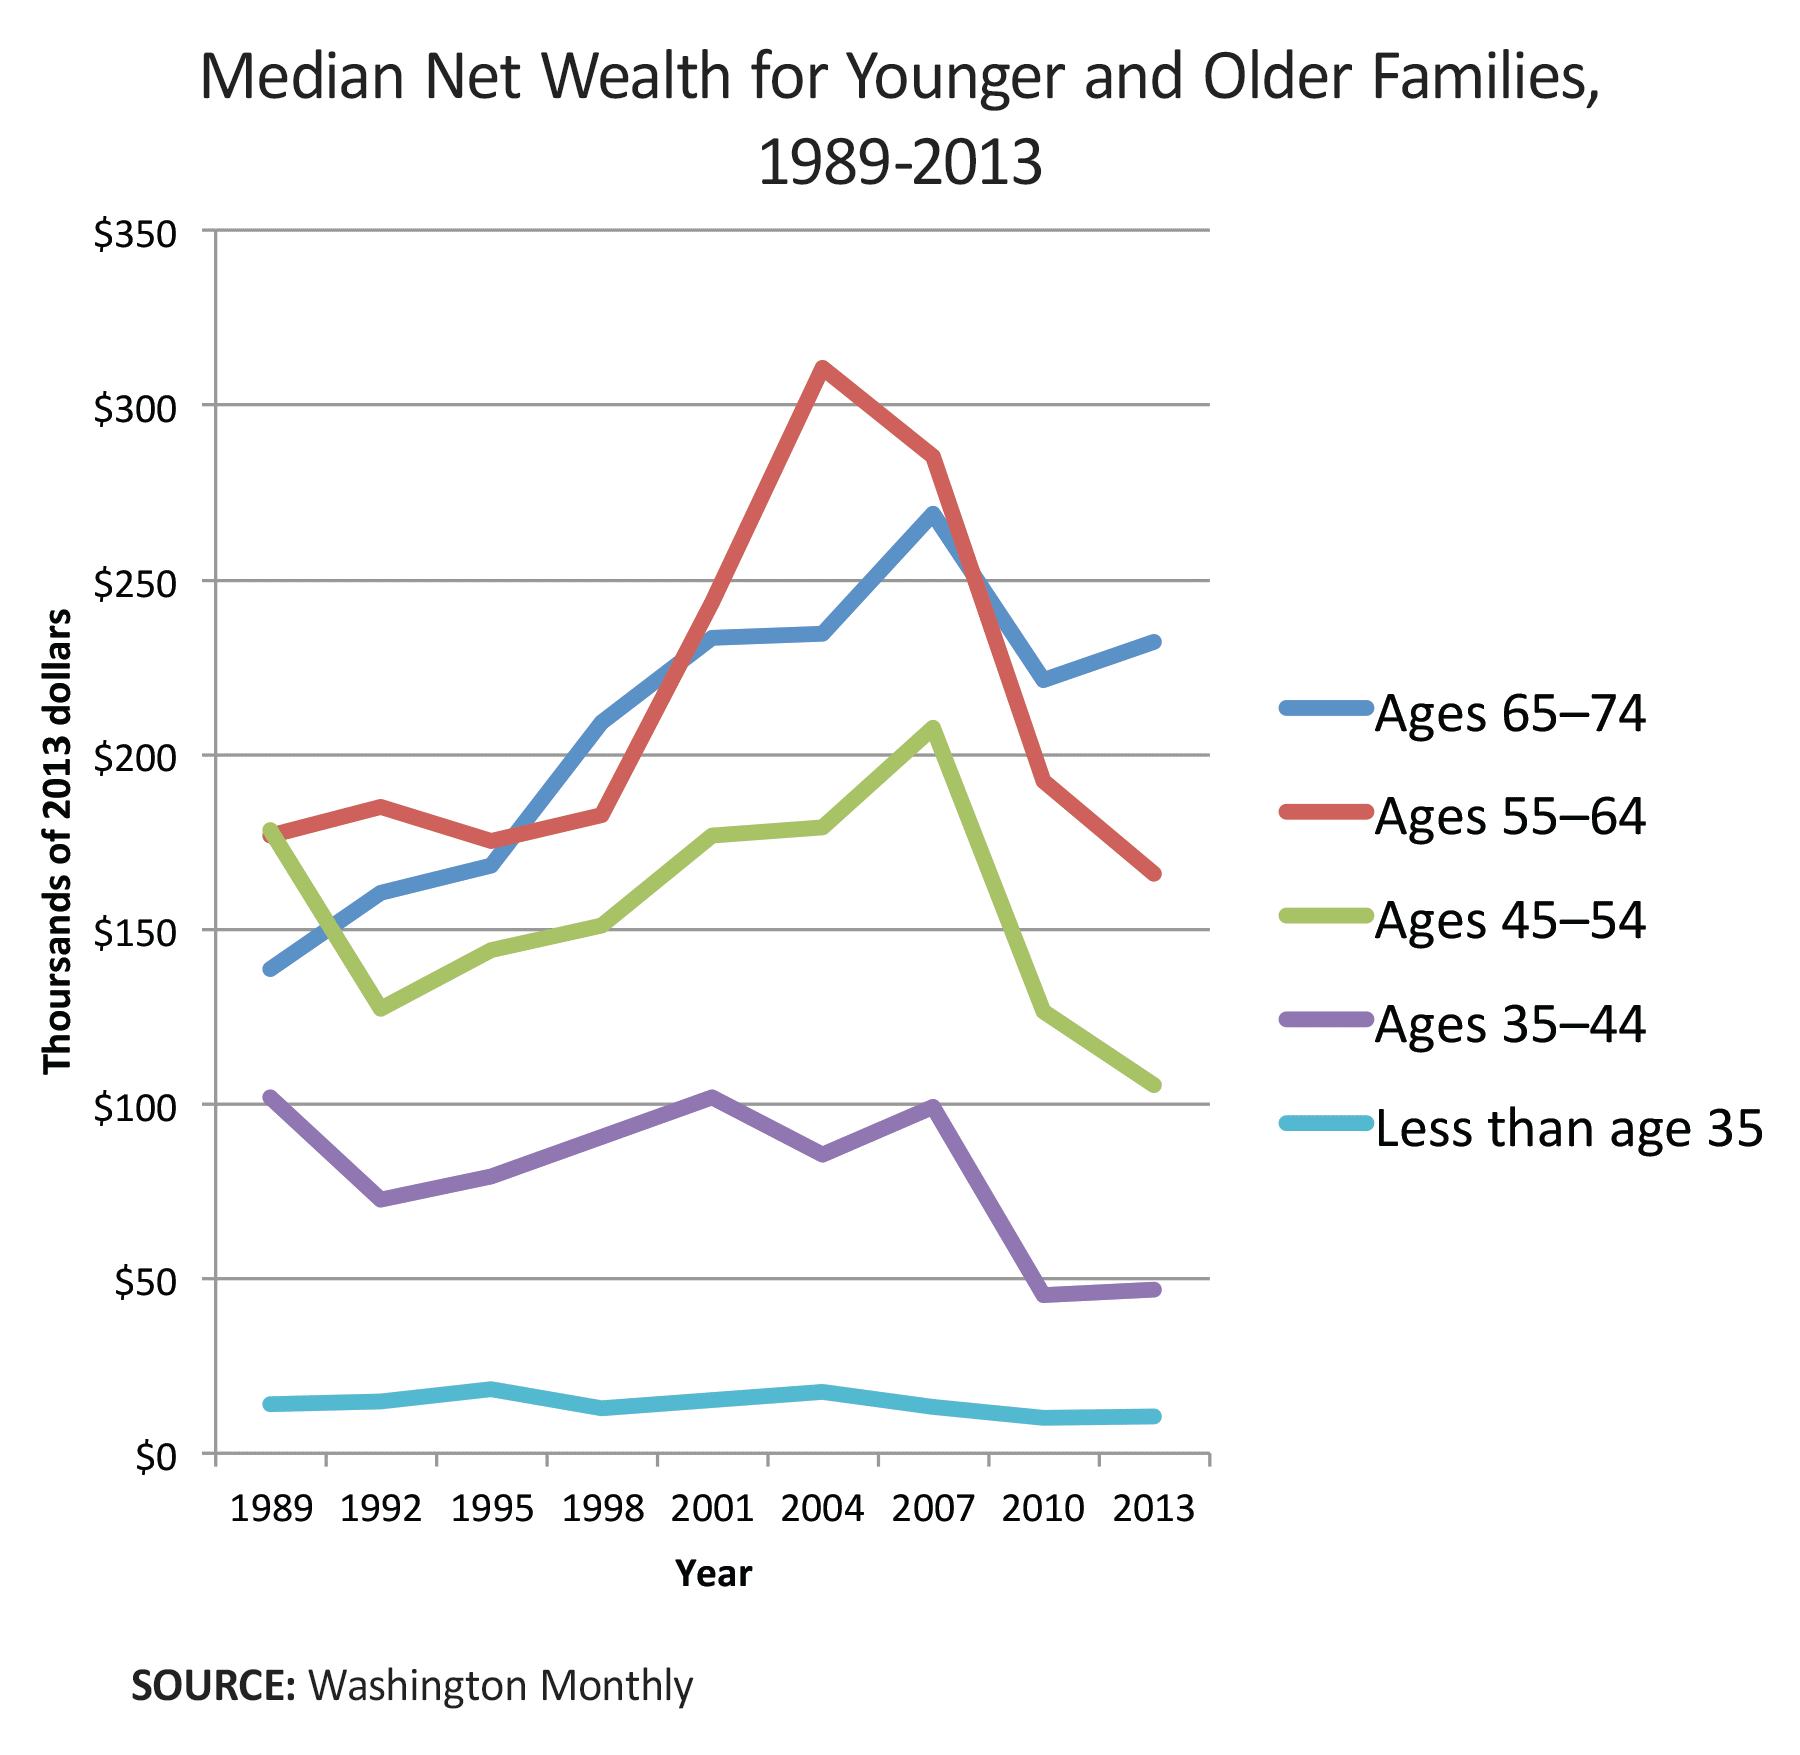 median net wealth for younger and older families 1989-2013